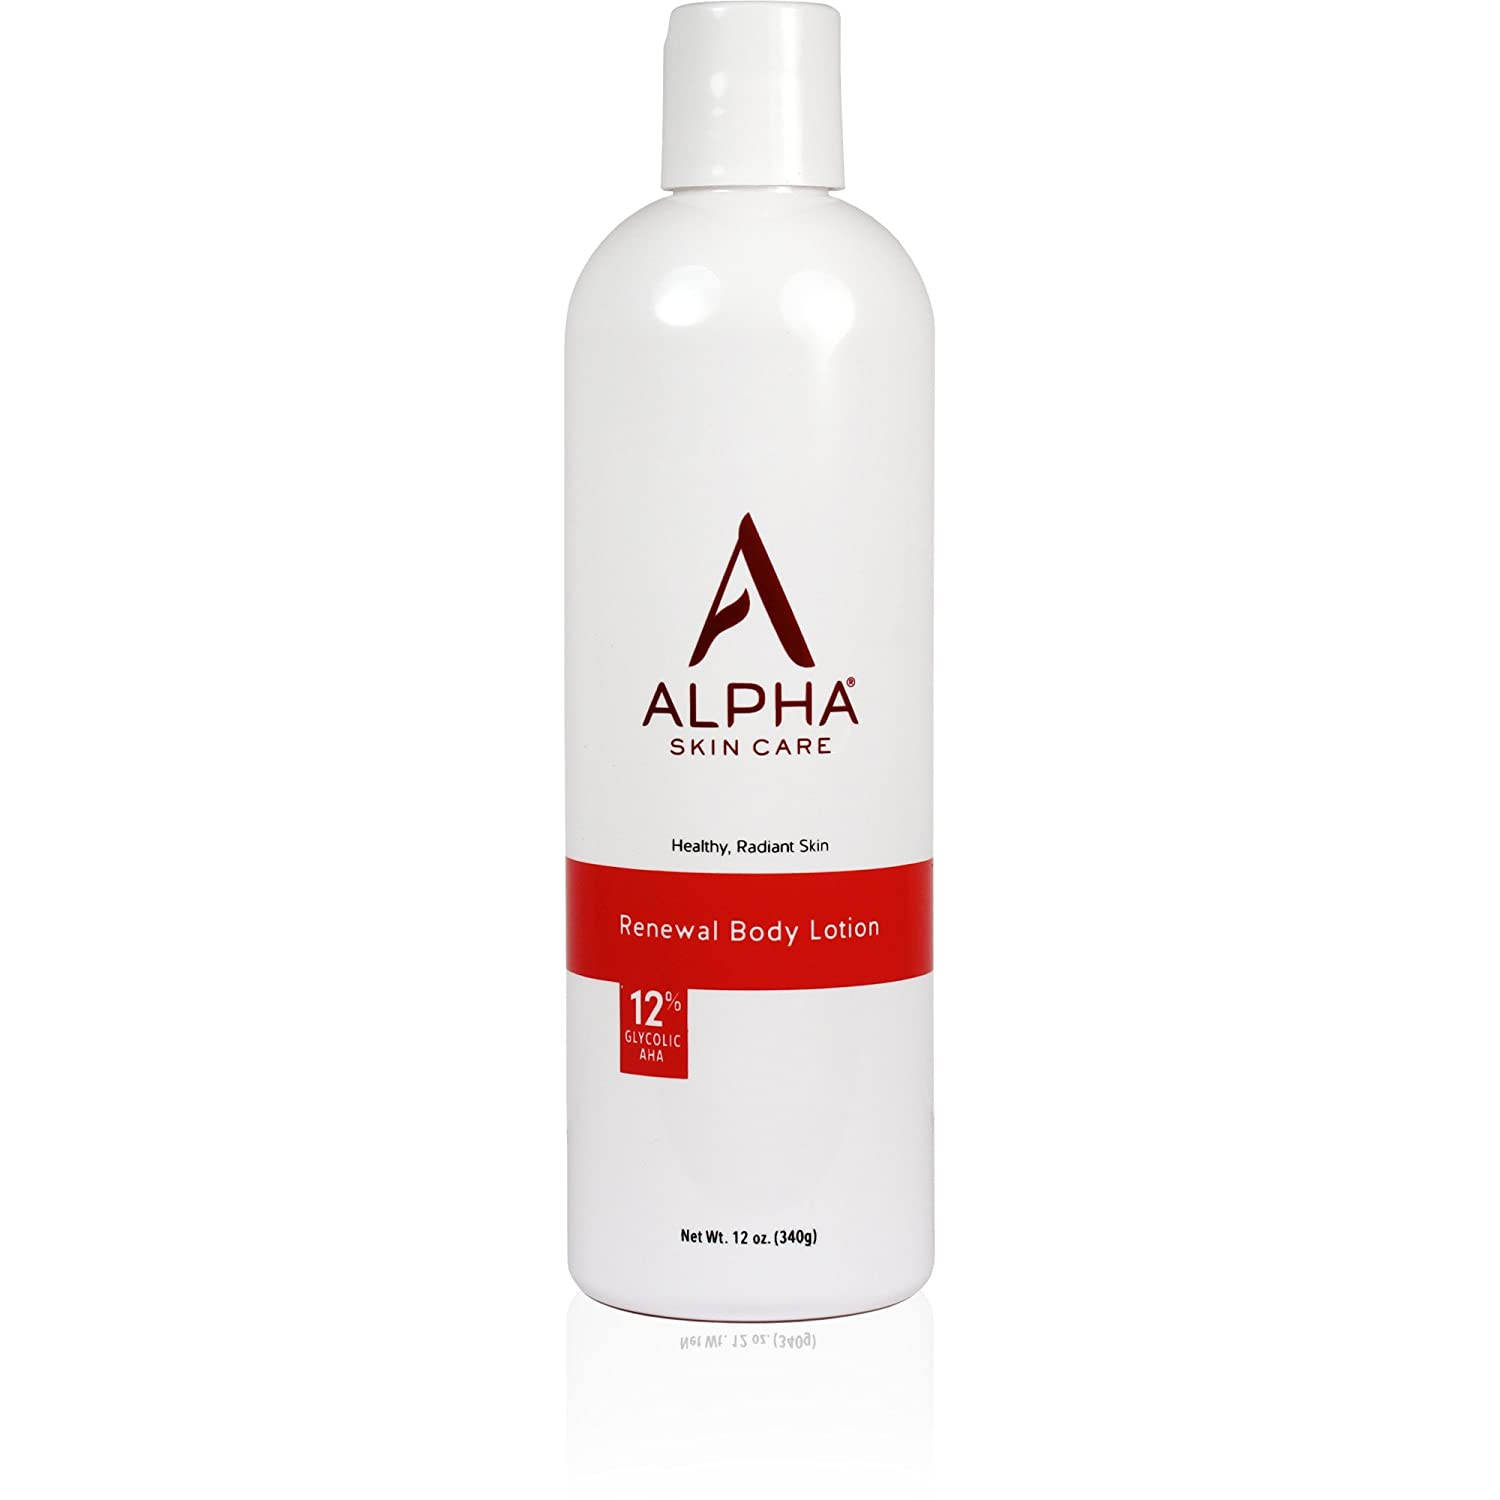 Alpha Skin Care Renewal Body Lotion with 12% Glycolic Aha, 12 oz. NEOTERIC COSMETICS - INC 735379152318